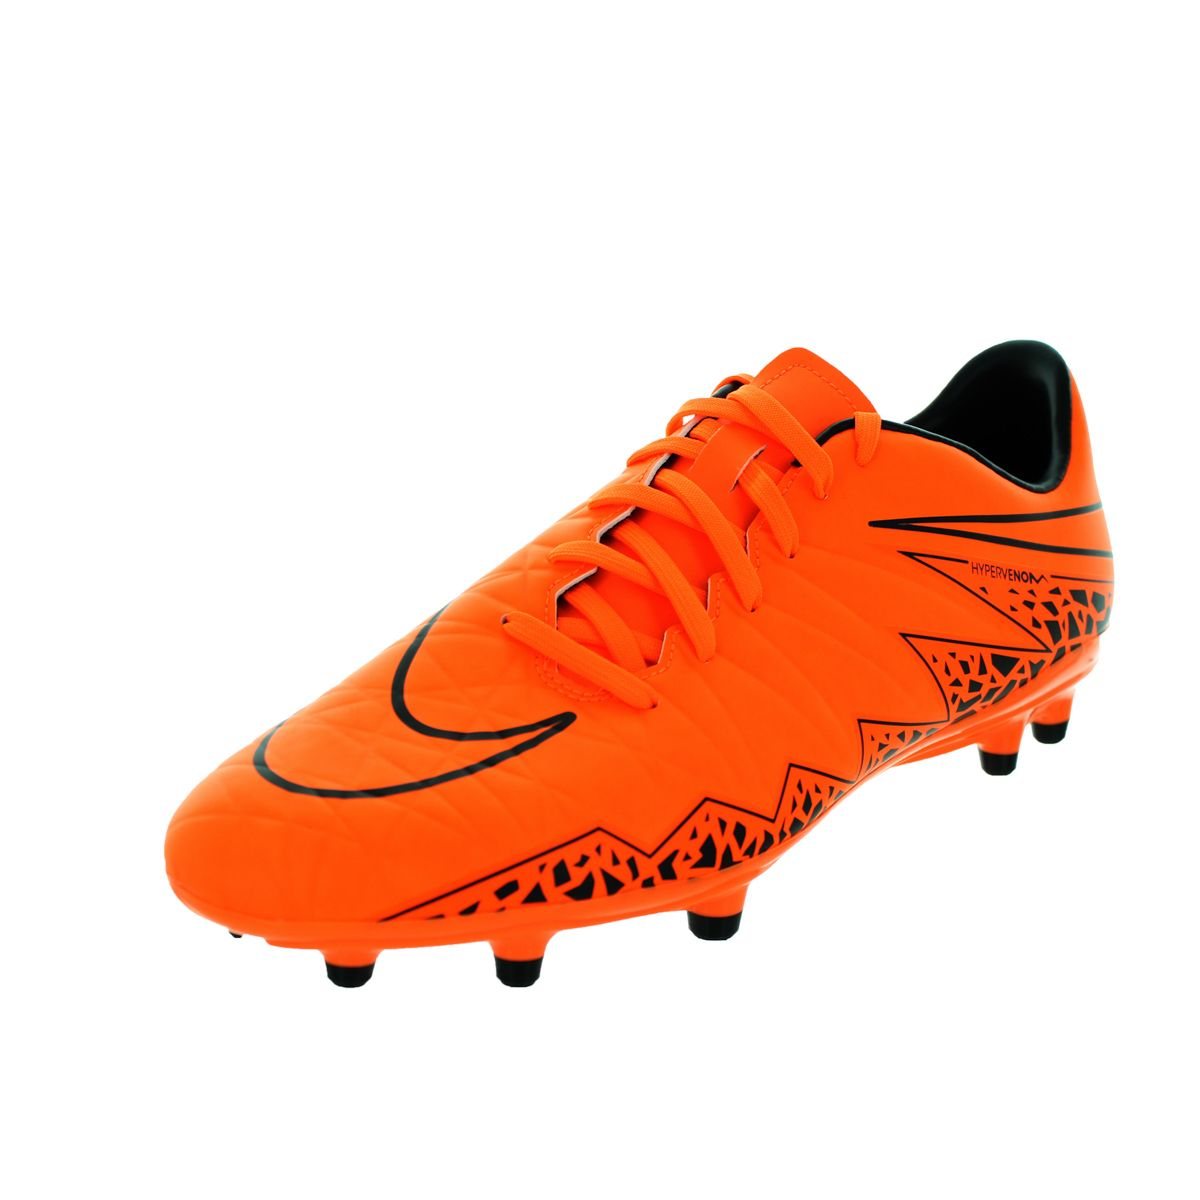 Get the most out of your footwear with these sporty and stylish Nike Men\u0027s  Hypervenom Phelon